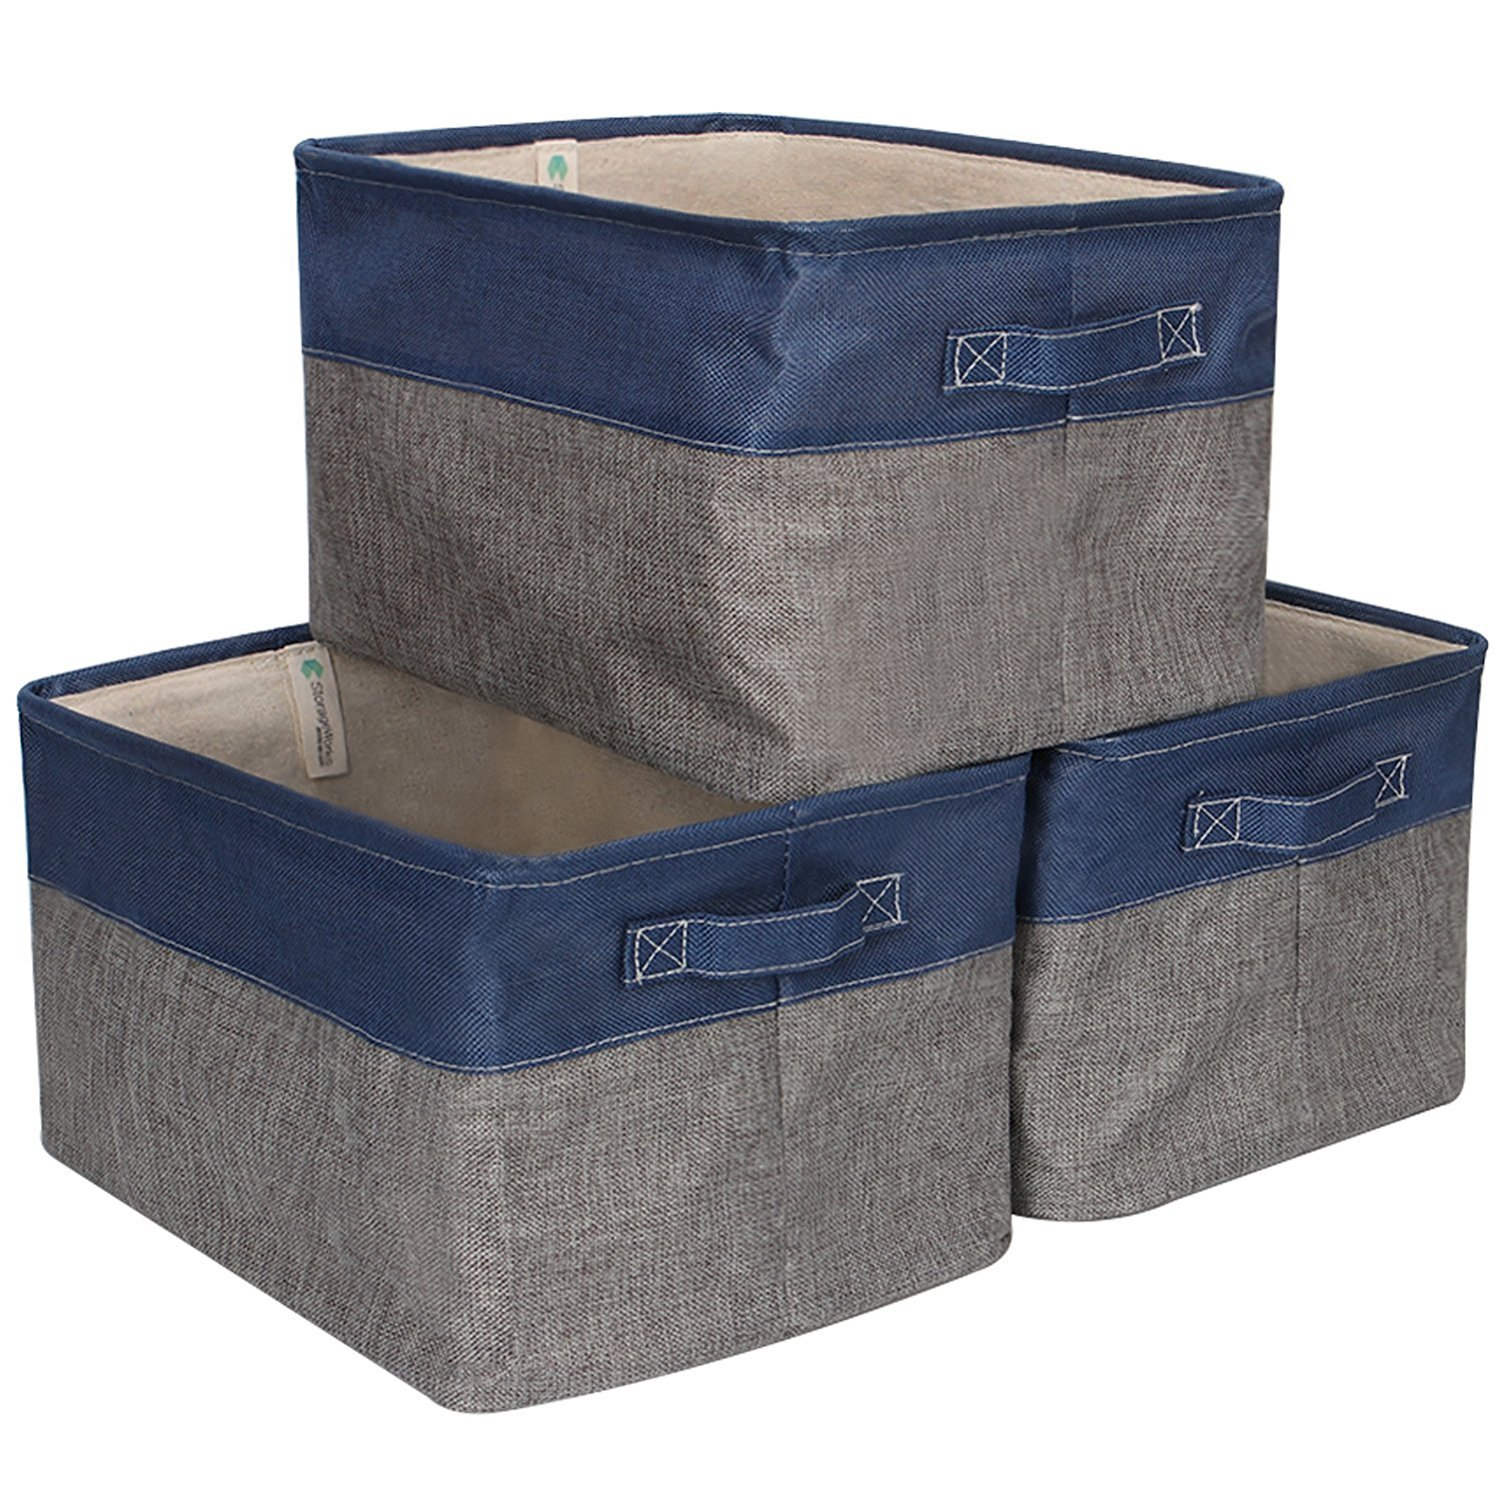 StorageWorks Storage Basket, Foldable Polyester Linen Cloth Bin Organizer, Blue and Gray, Large, 3-Pack